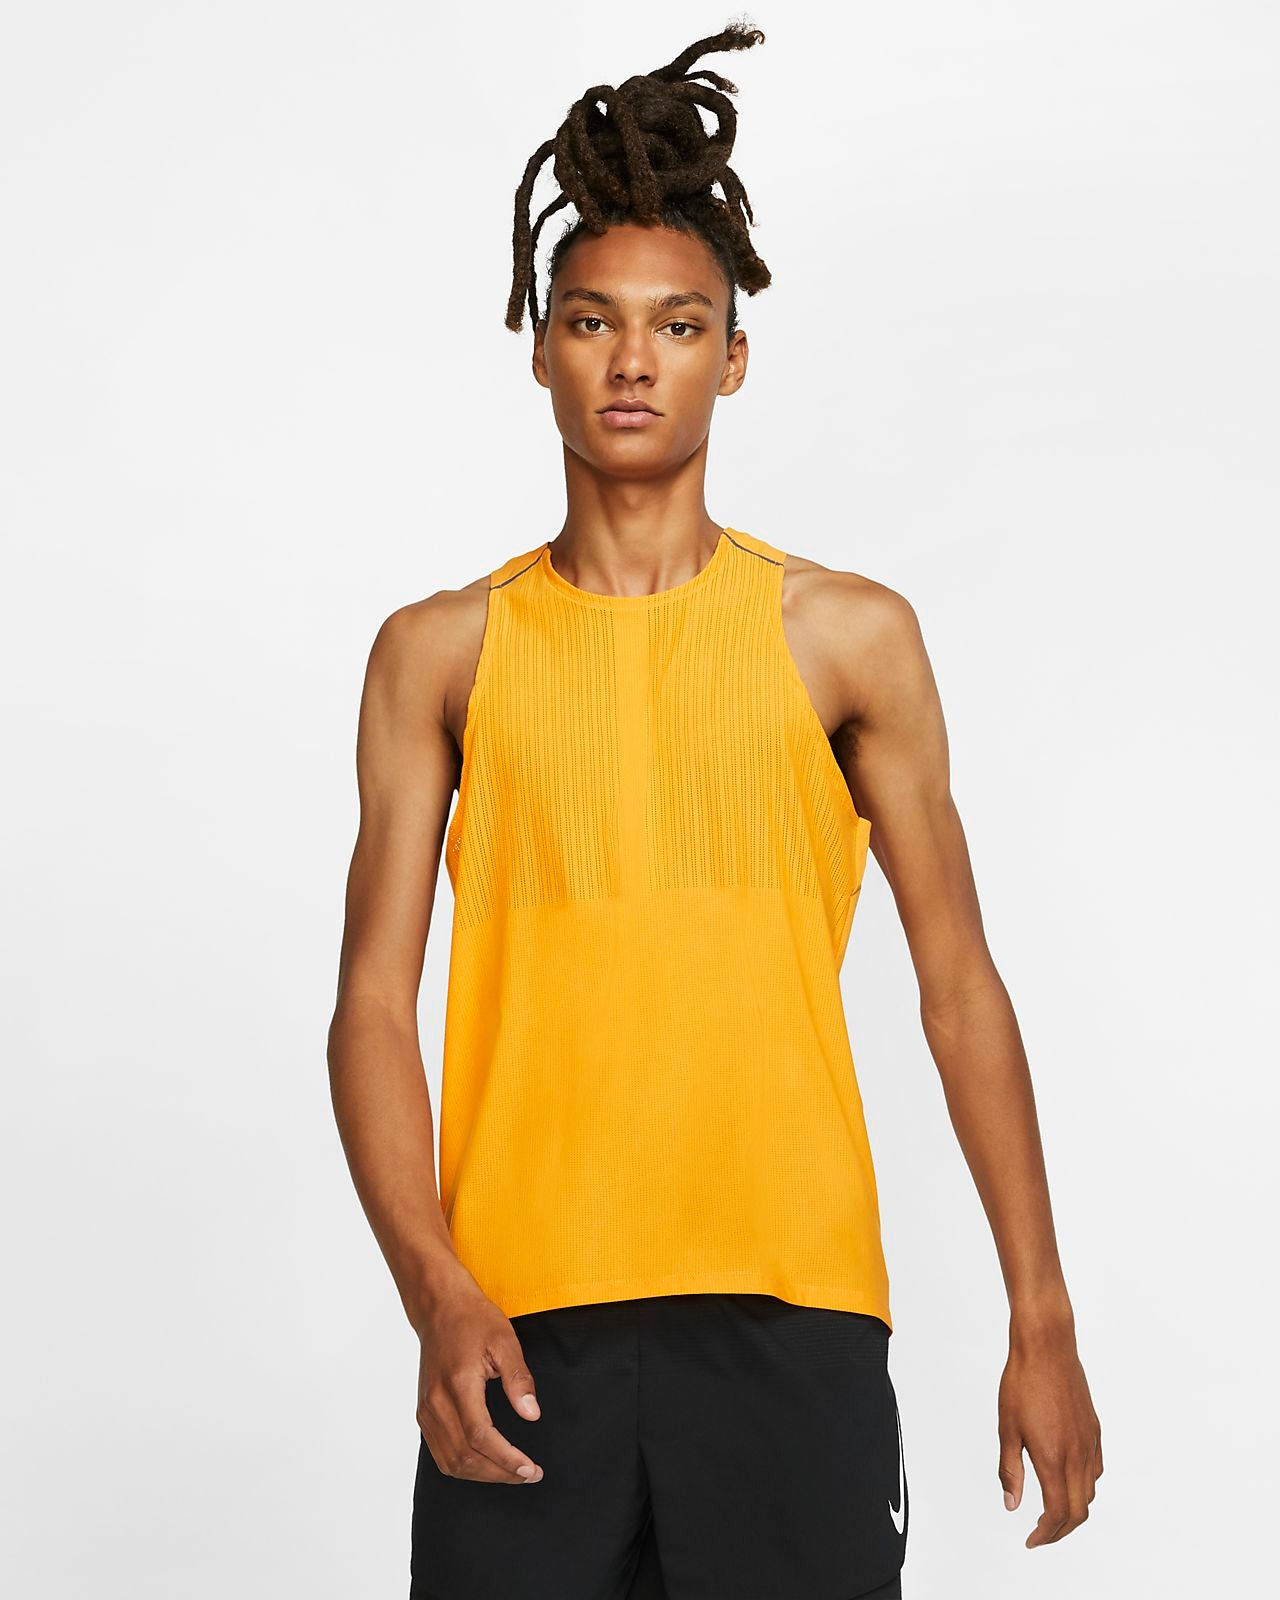 Men's Nike Tech Pack Tank.    Medium.     BV5665-886